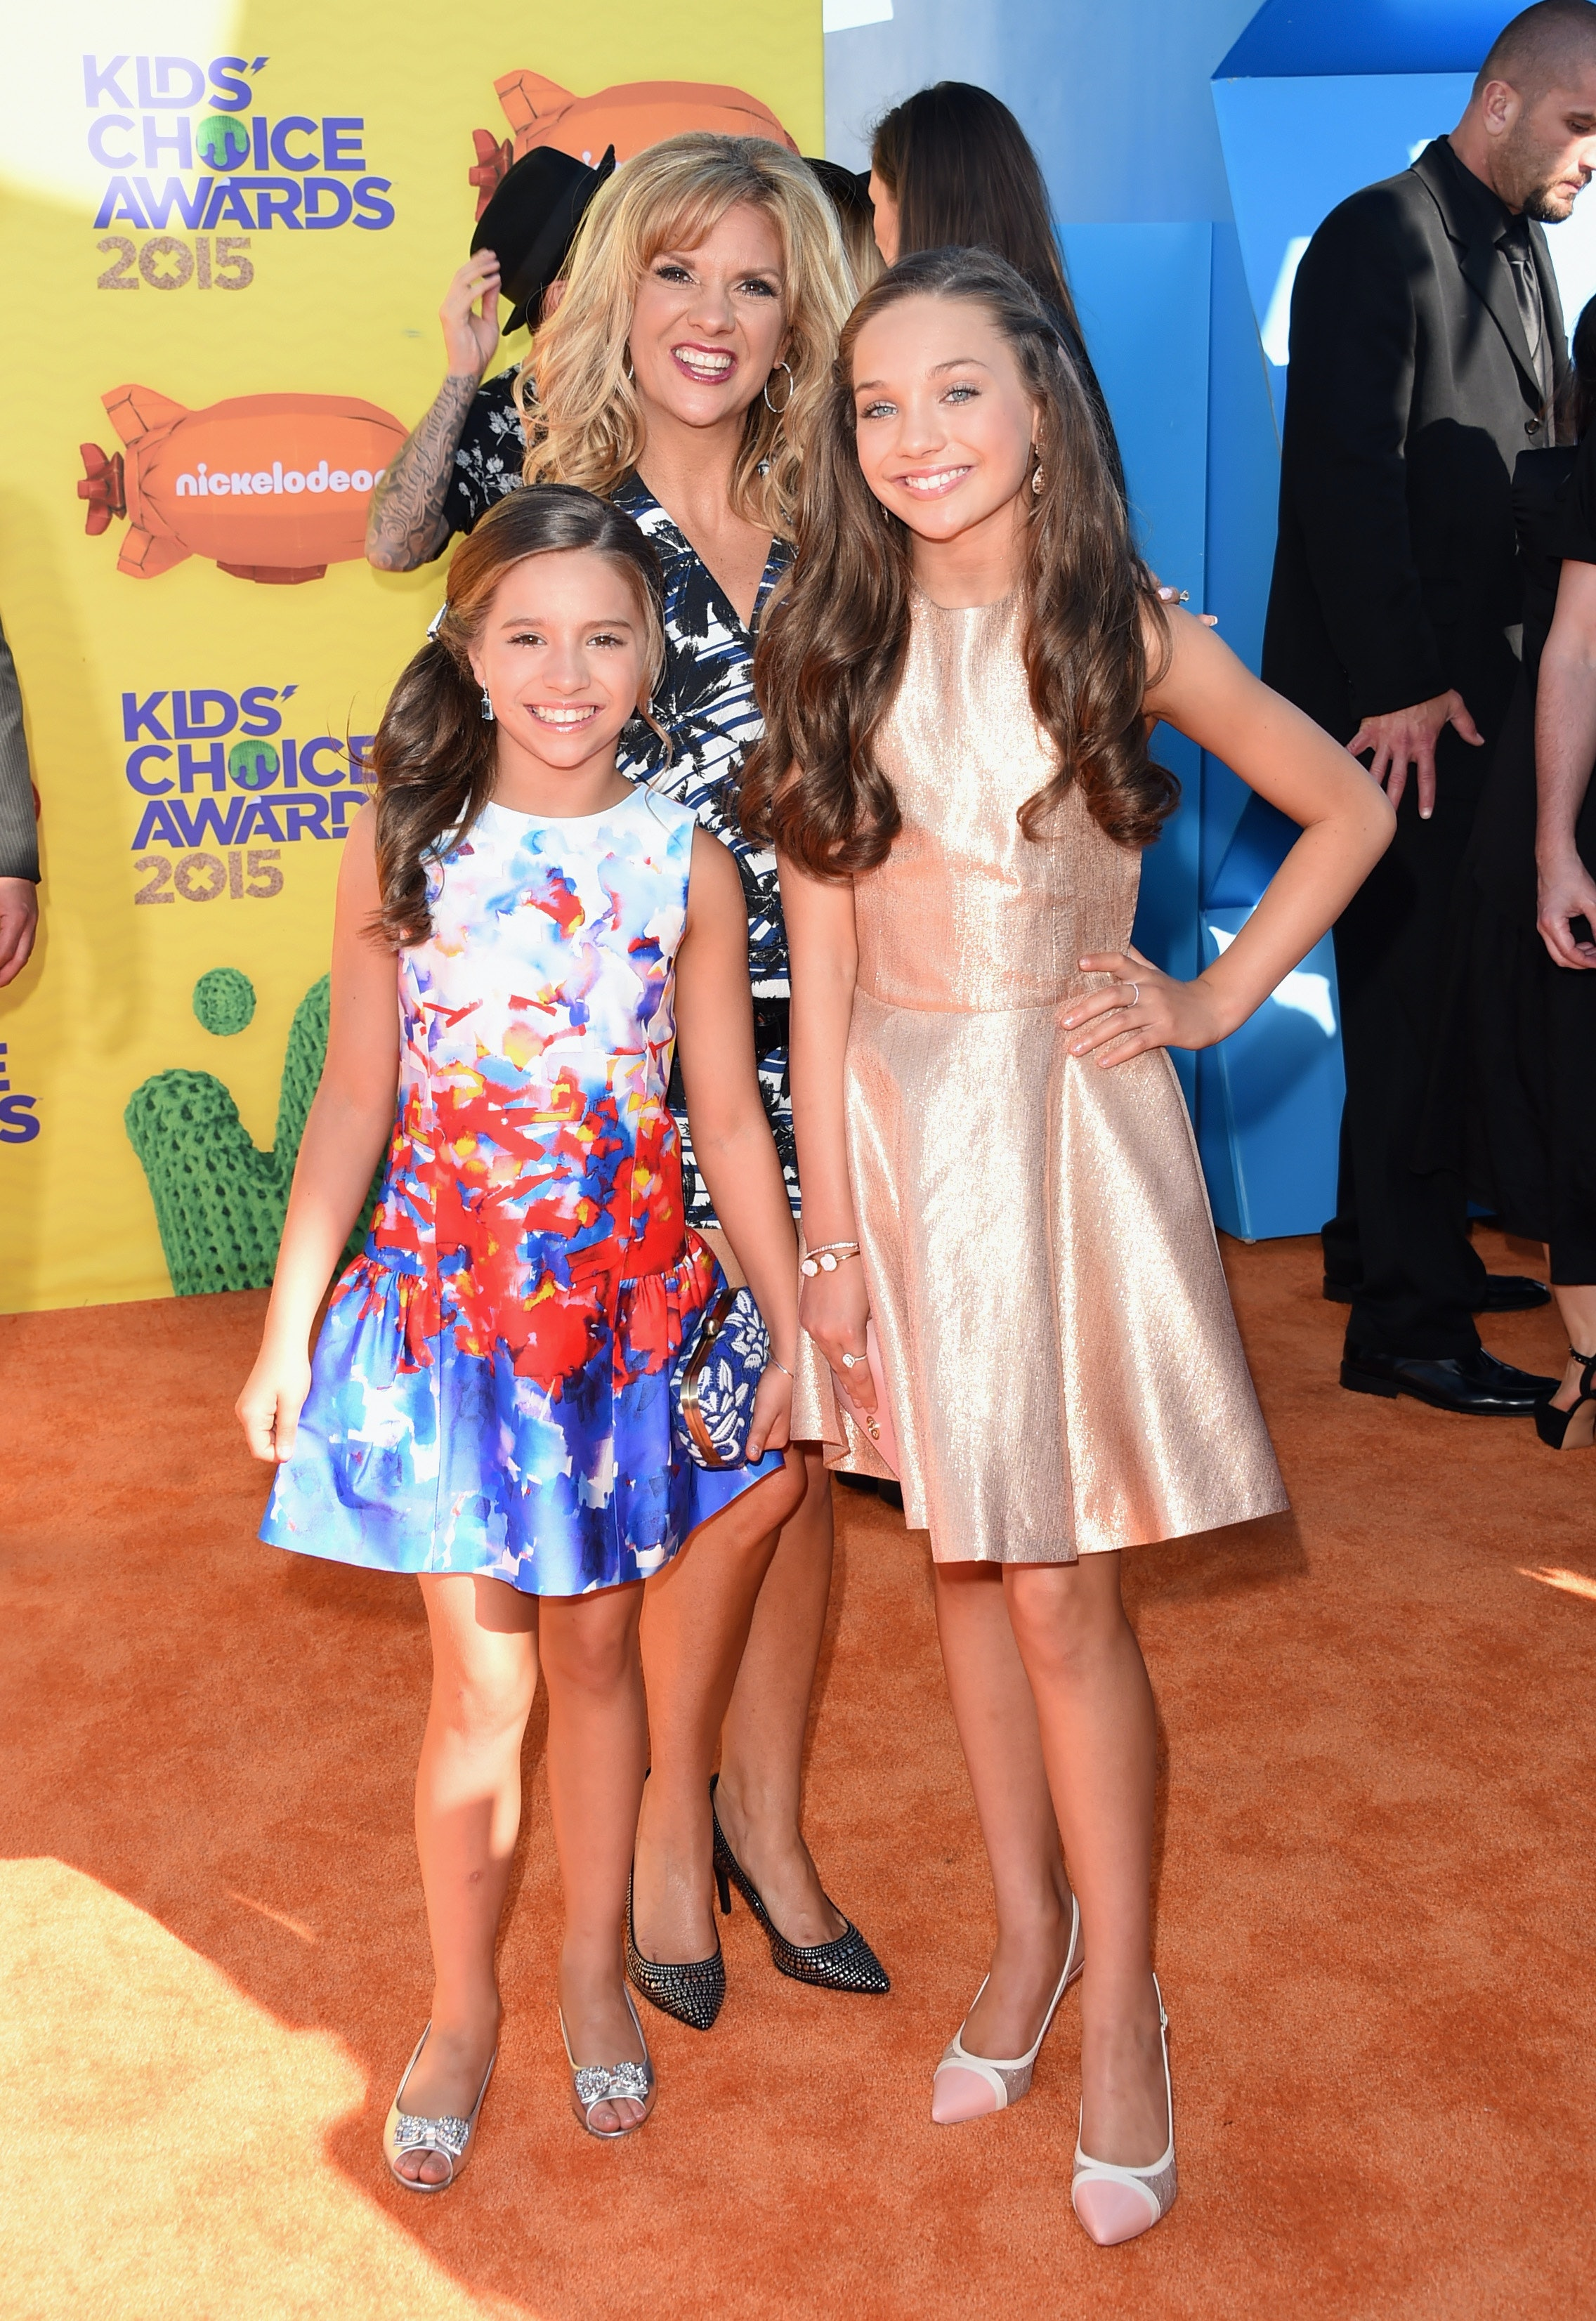 Maddie Ziegler Replaced Mackenzie On  Dance Moms  As The Lead In The Group  Number   It Caused Tension Between The Parents. Maddie Ziegler Replaced Mackenzie On  Dance Moms  As The Lead In